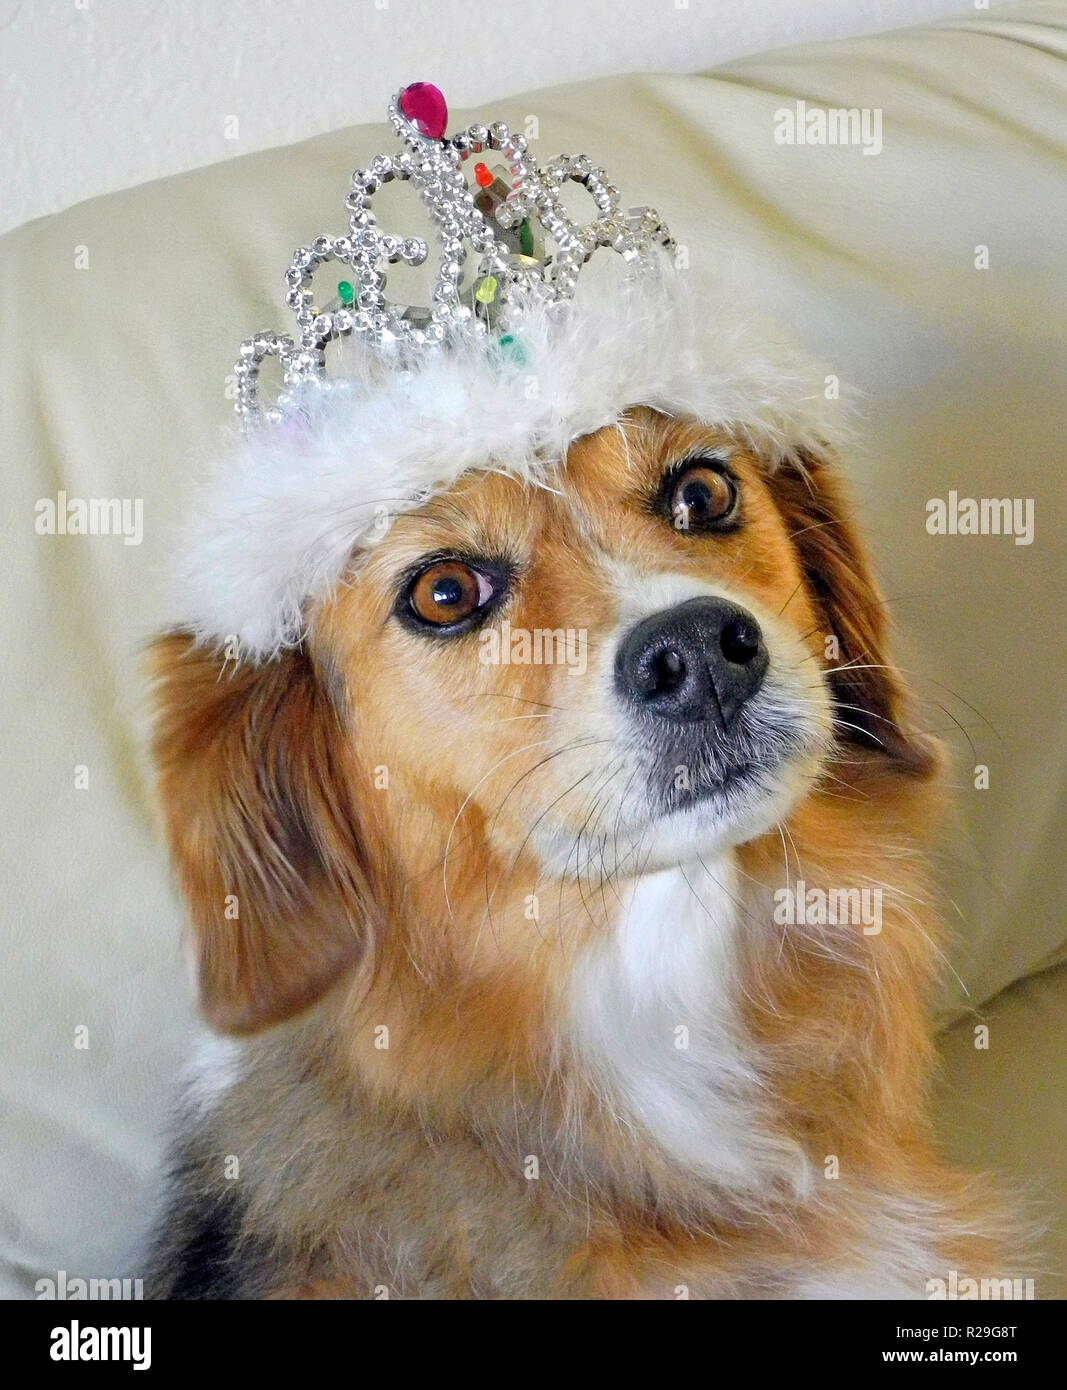 A bejeweled tiara signifies that this regal female dog has been crowned queen of the family couch. - Stock Image